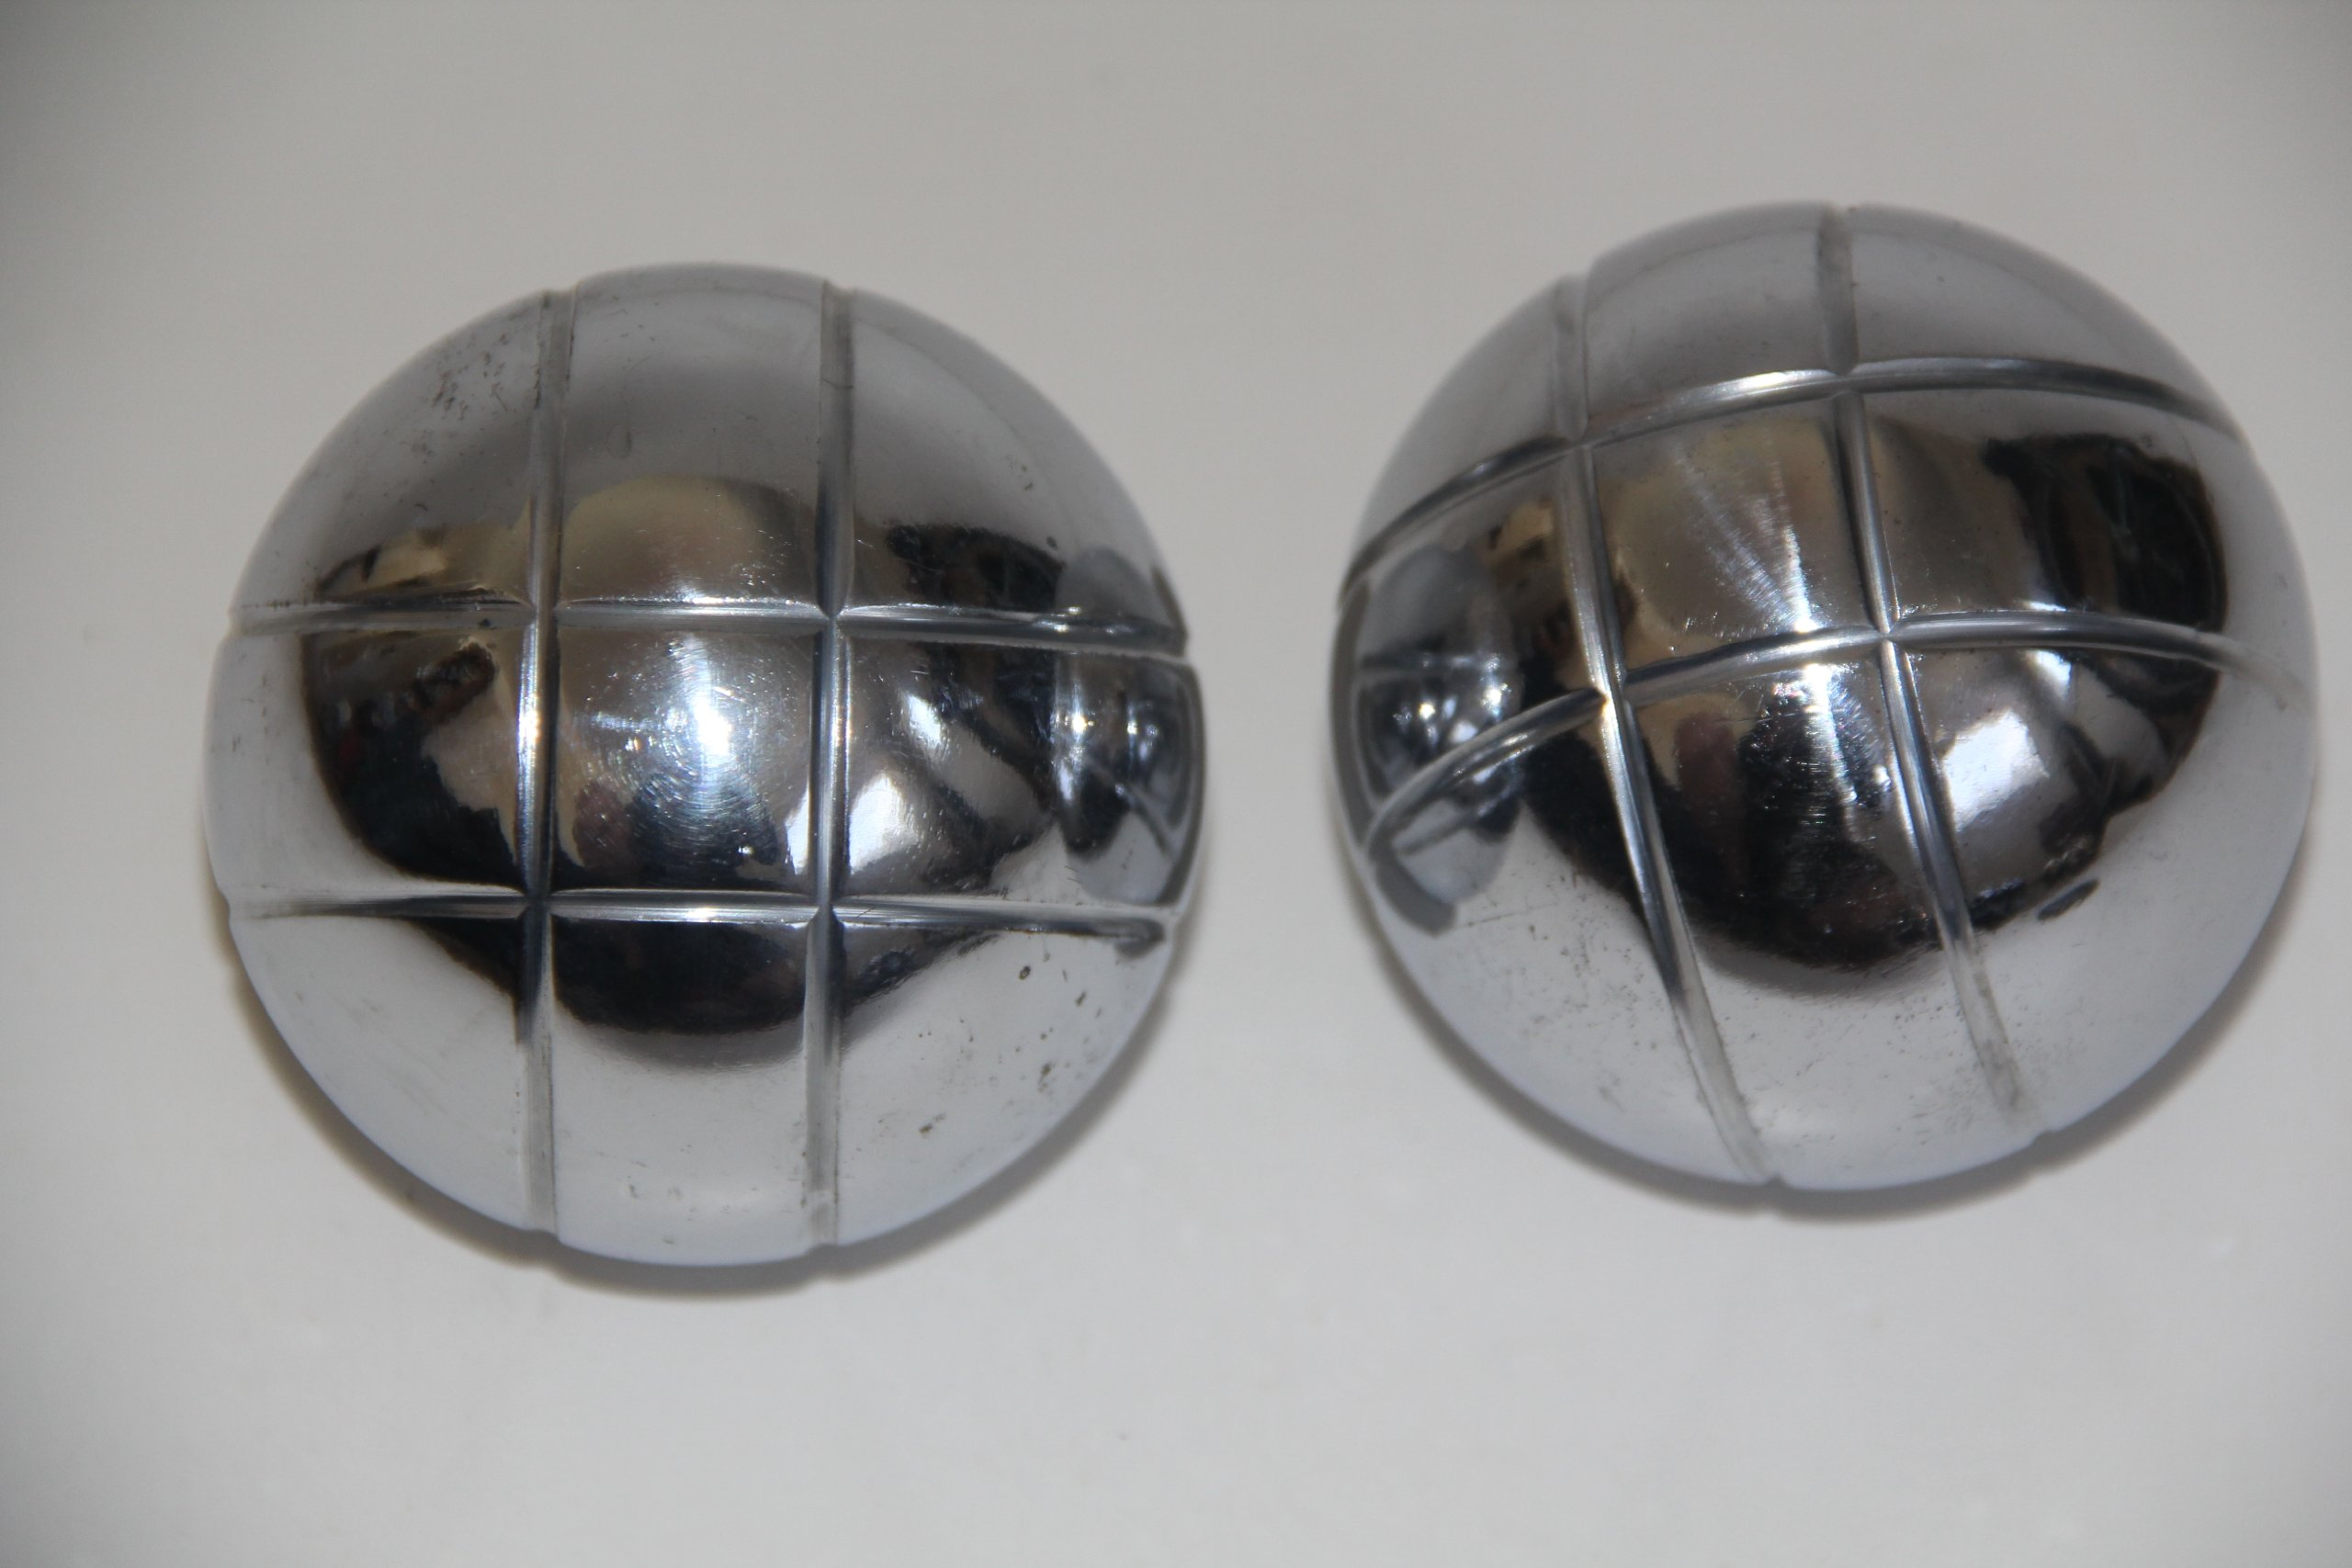 Replacement 73mm Metal Bocce/Petanque Silver Balls - pack of 2 with small criss cross pattern